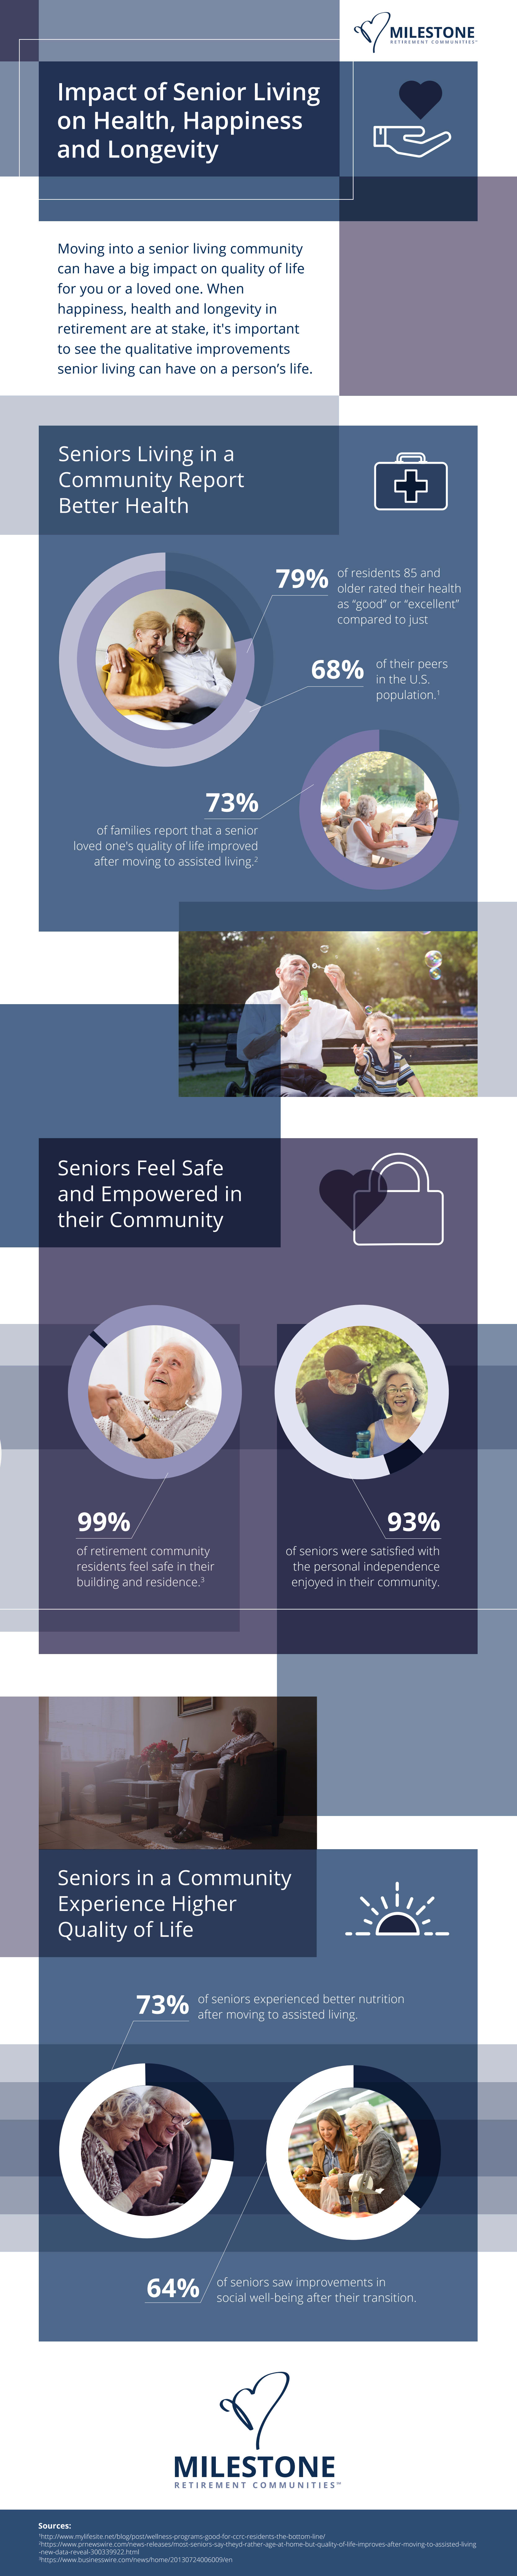 Family Matters: The positive impact of senior living on families